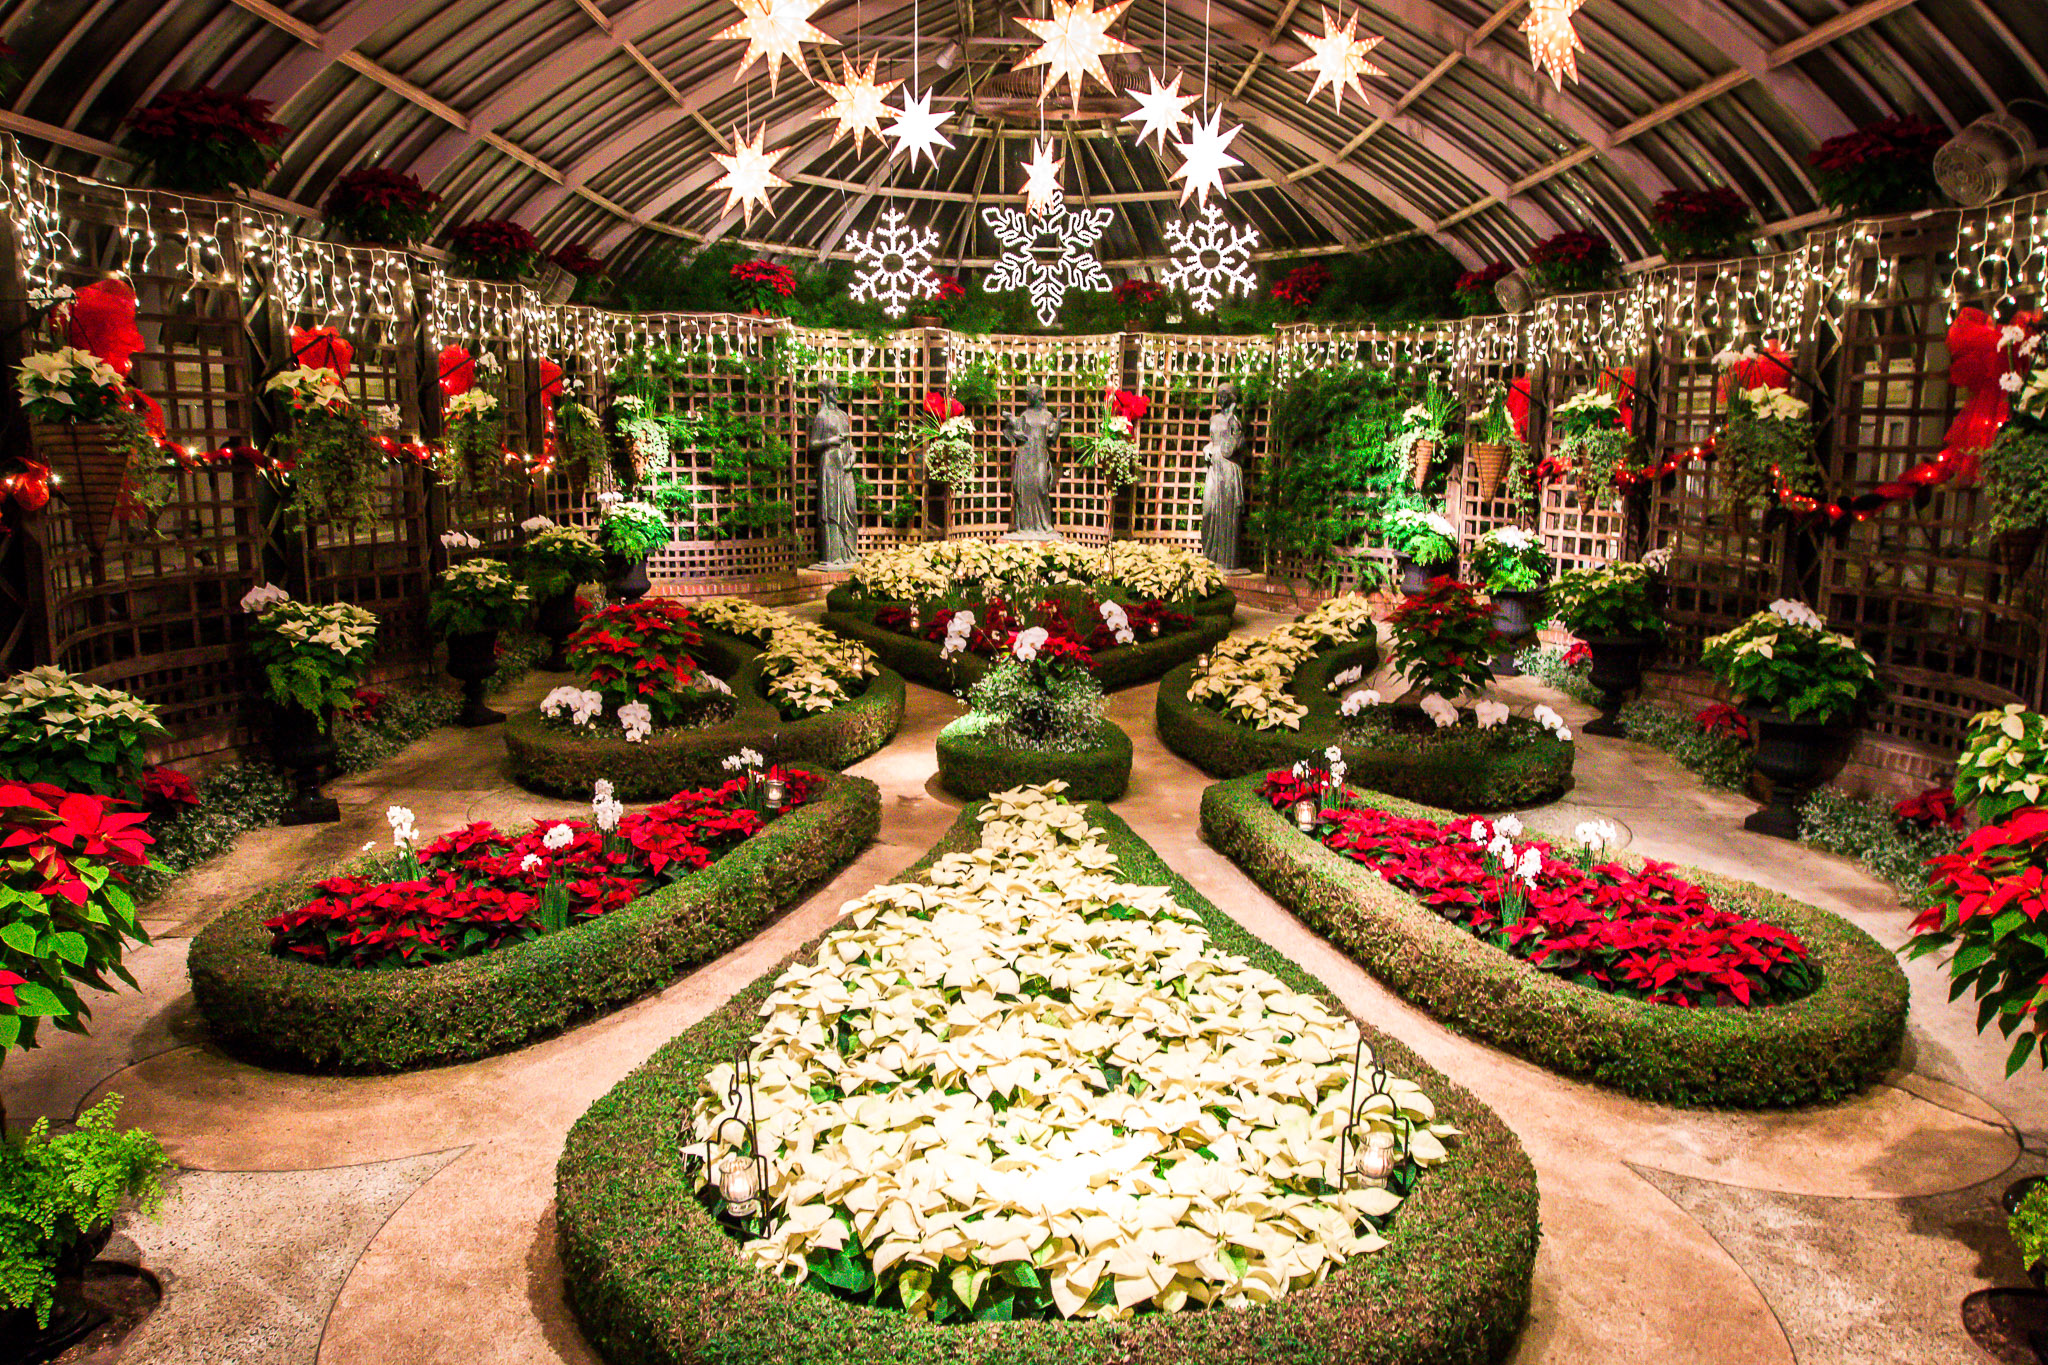 Phipps conservatory winter flower show and light garden eat work home north america phipps conservatory winter flower show and light garden north americapittsburghtravelusa dhlflorist Choice Image